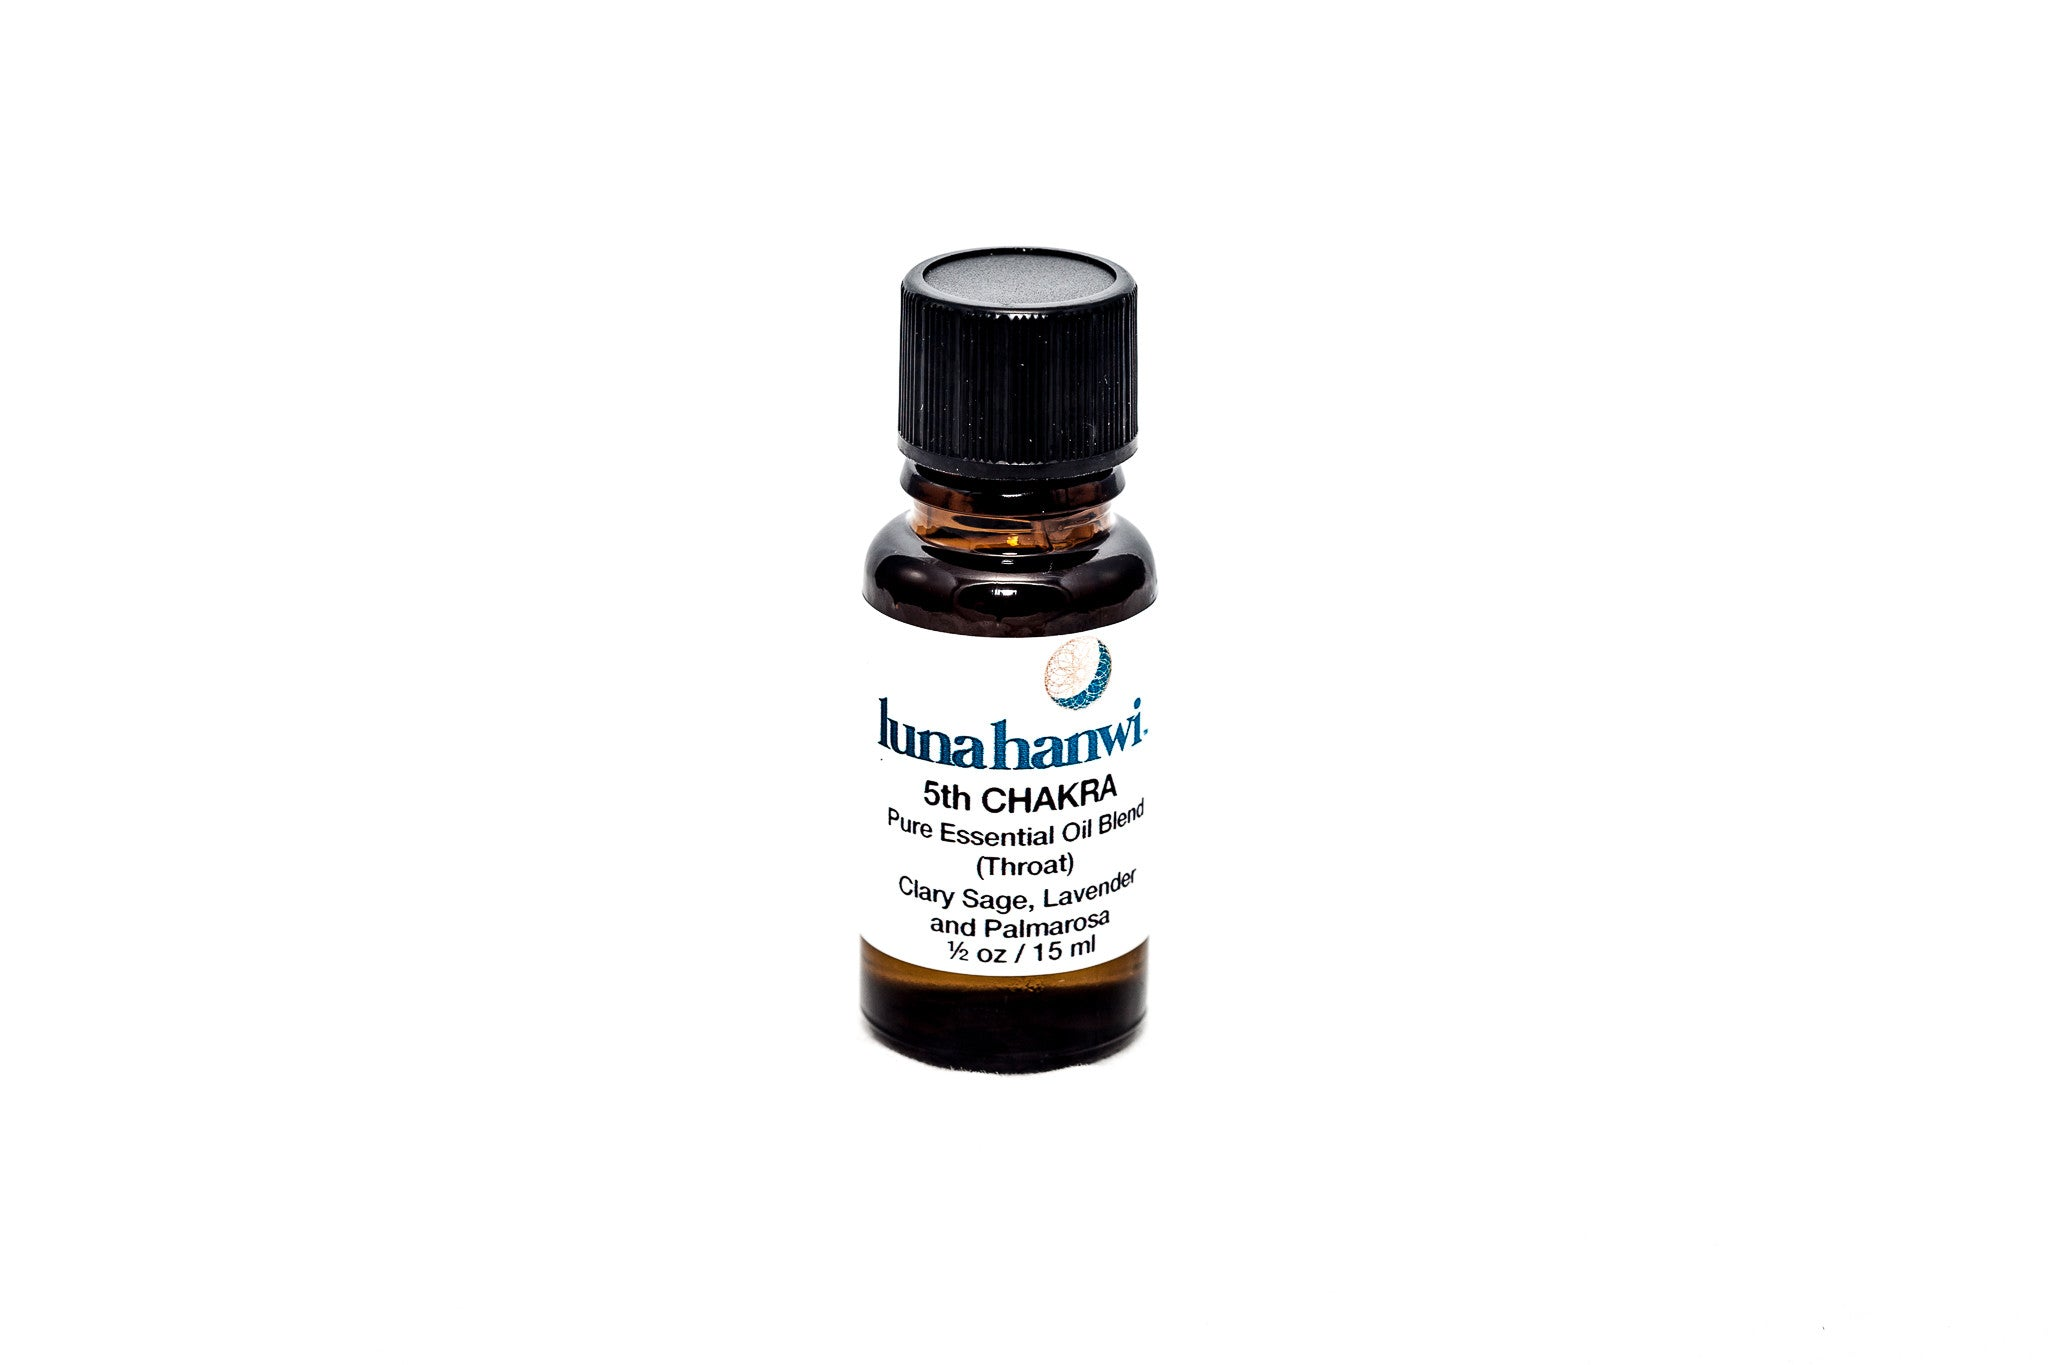 5th Chakra Essential Oil Blend (Throat) - Luna Hanwi